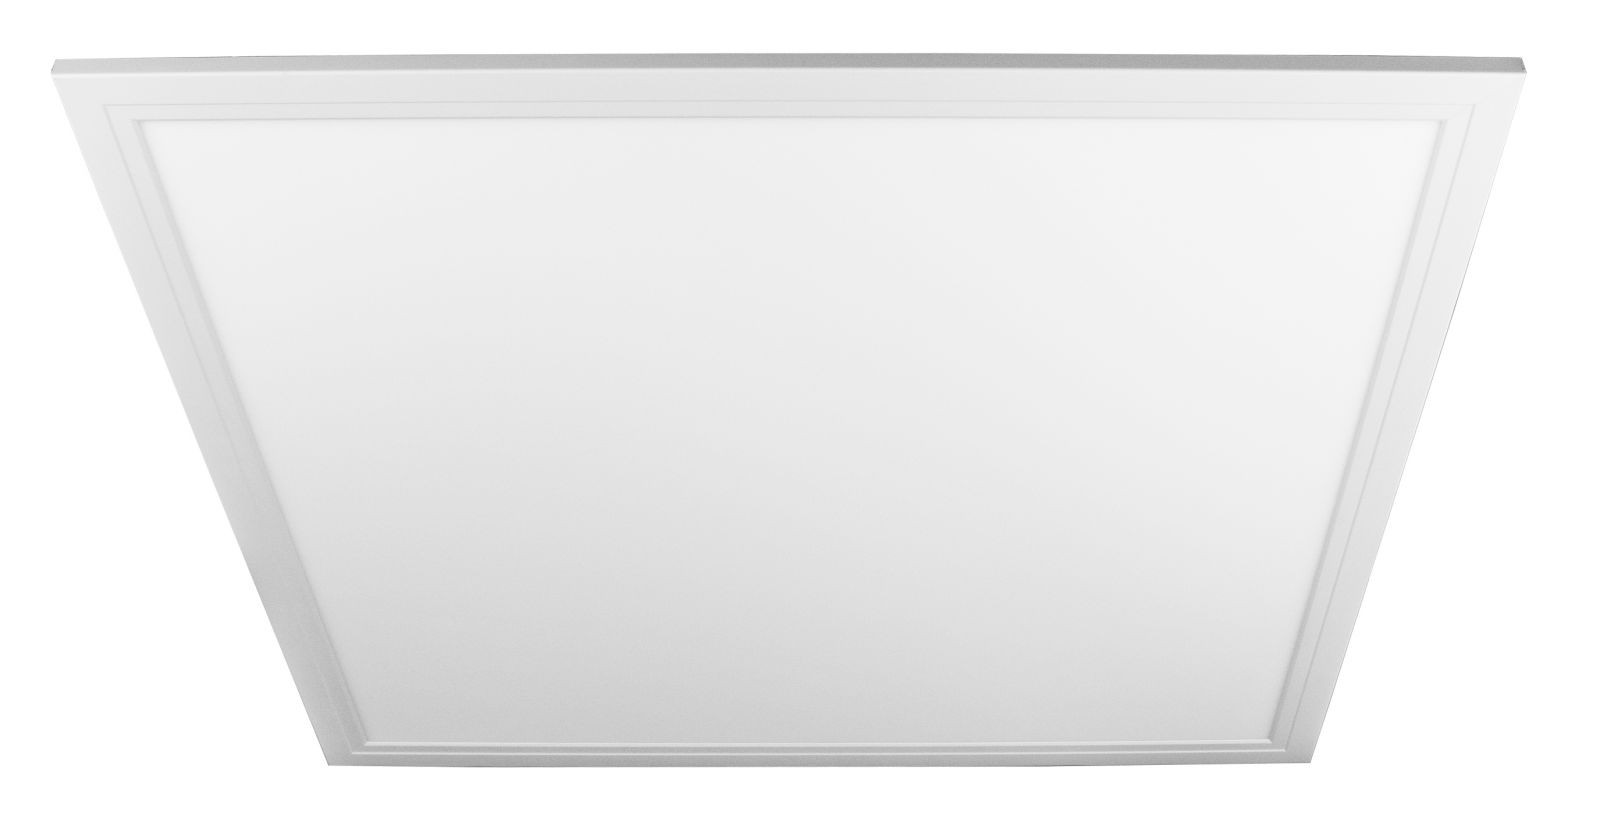 Landlite 36d213 36w Led Panel Light Welcome To The